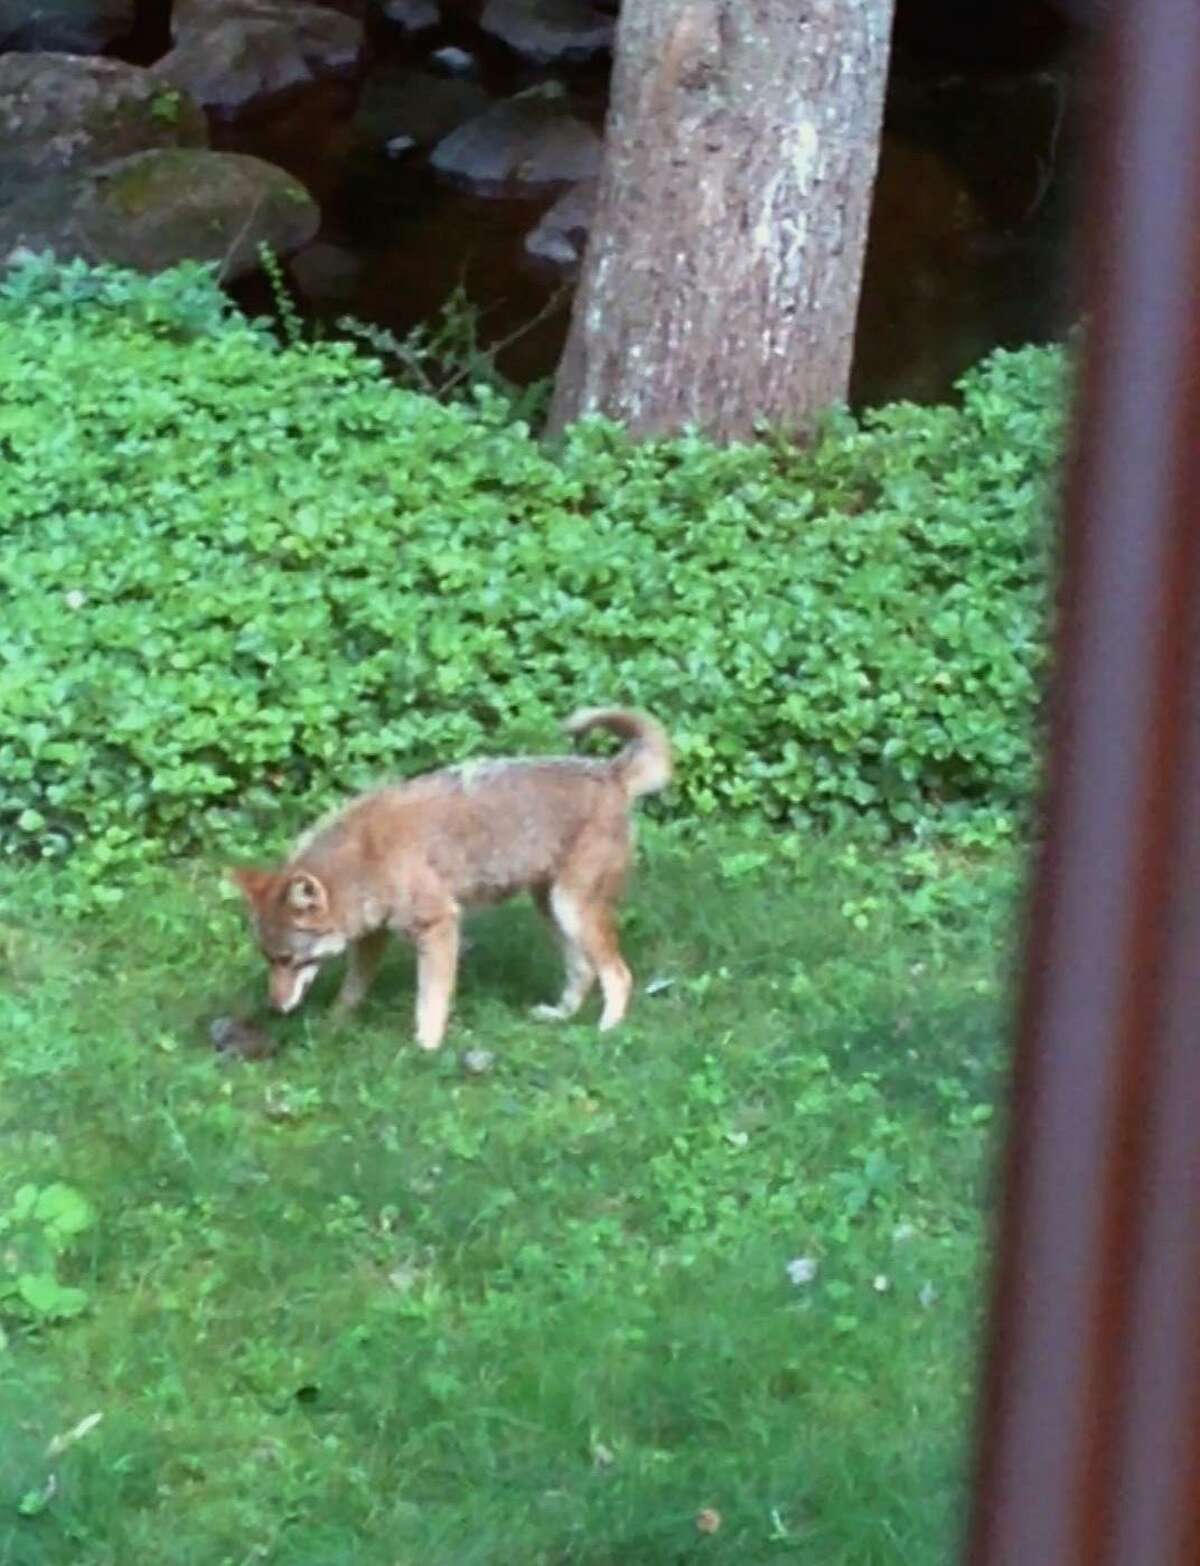 This coyote was recently photographed in the back yard of a Somerset Lane home in Stamford.